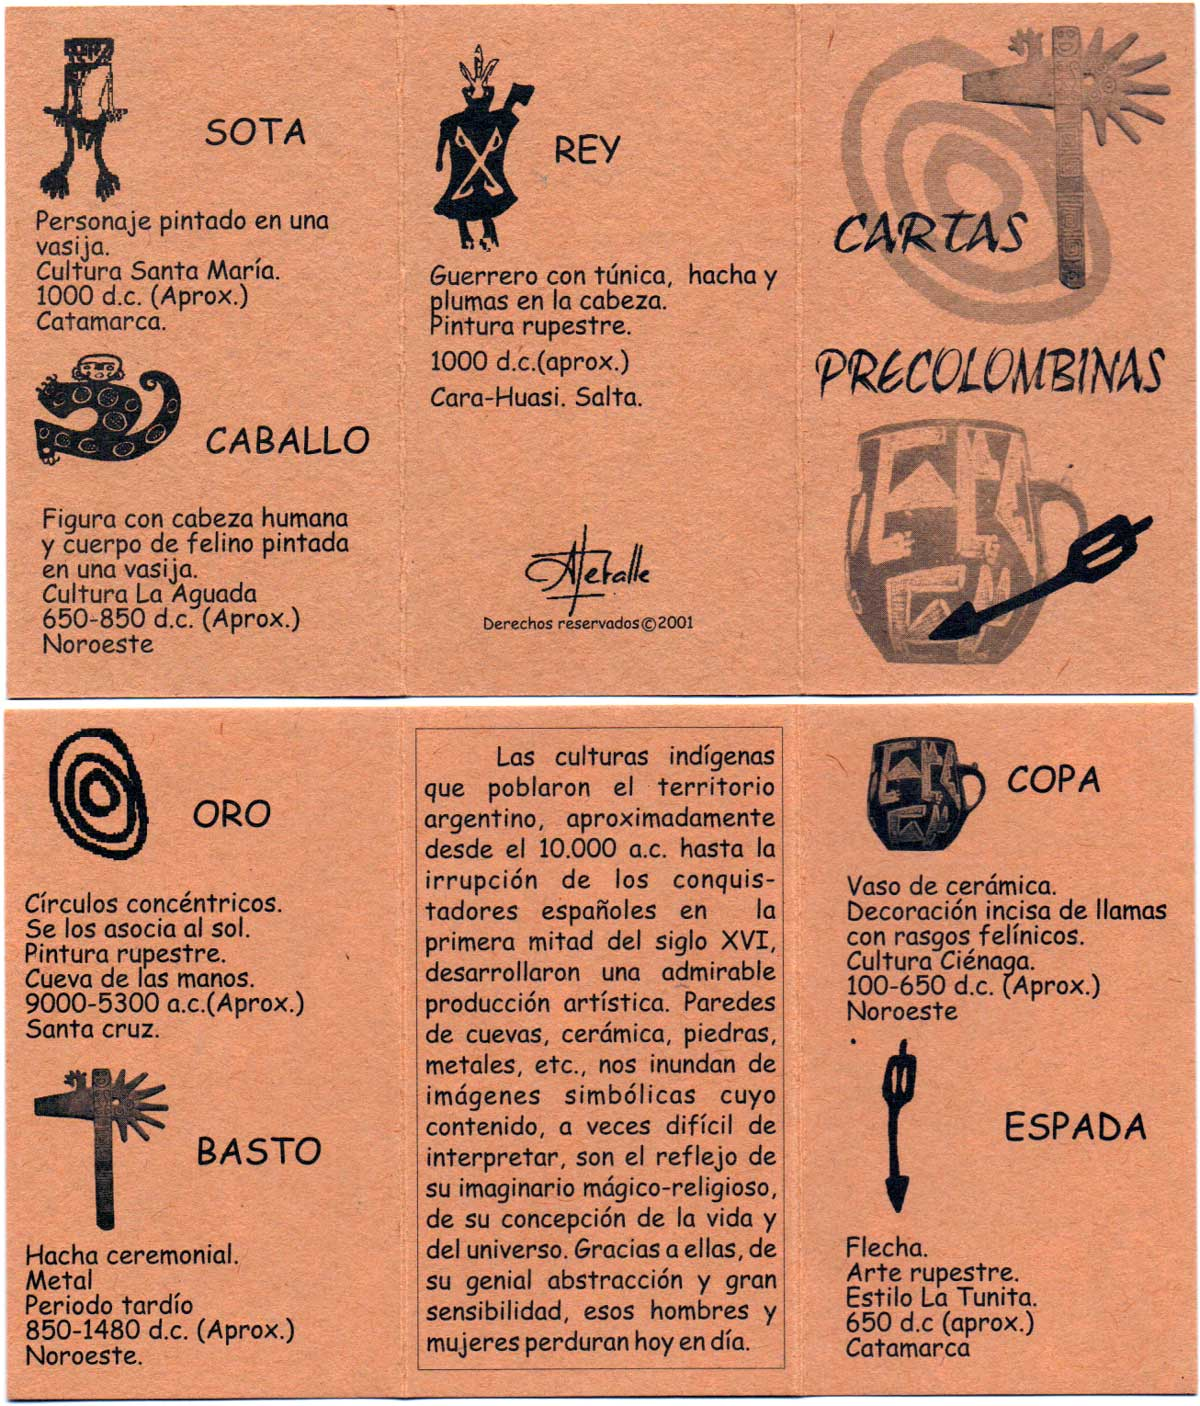 Spanish playing cards with Pre-Columbian designs from Argentina, 2001